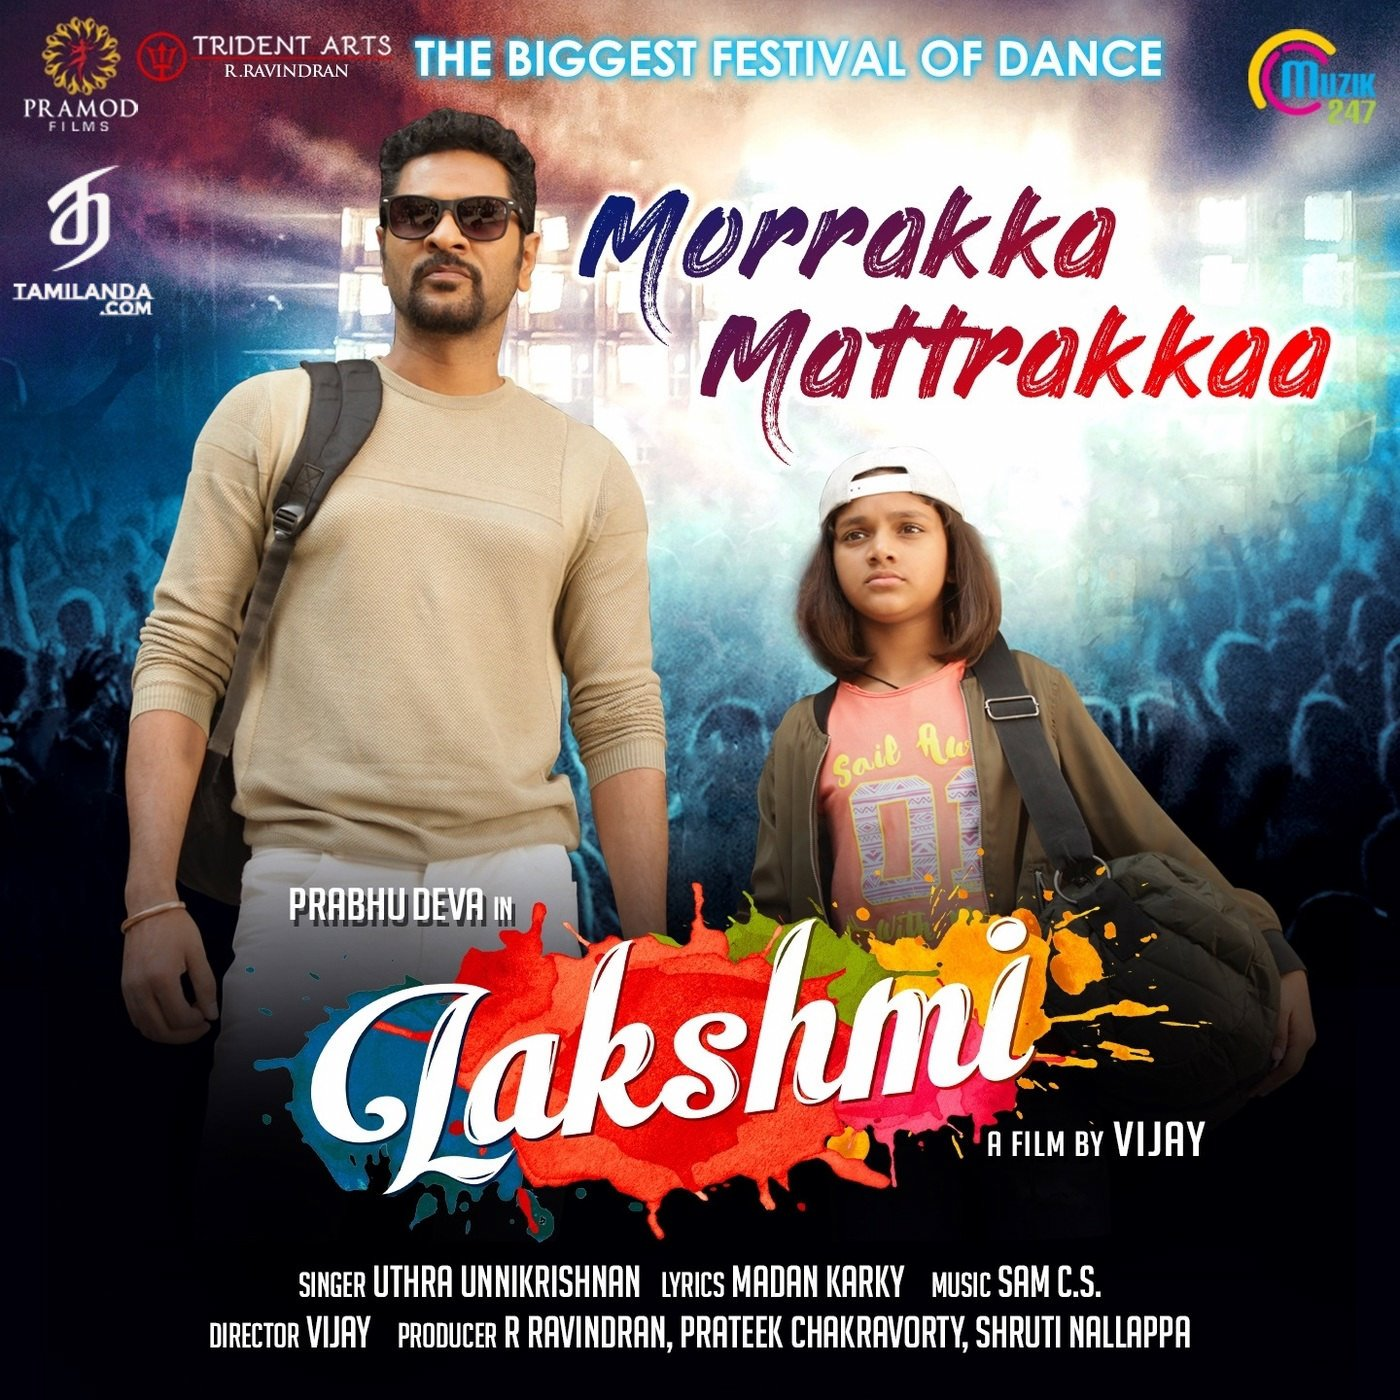 Morrakka Mattrakkaa (From Lakshmi) (Single) FLAC Song